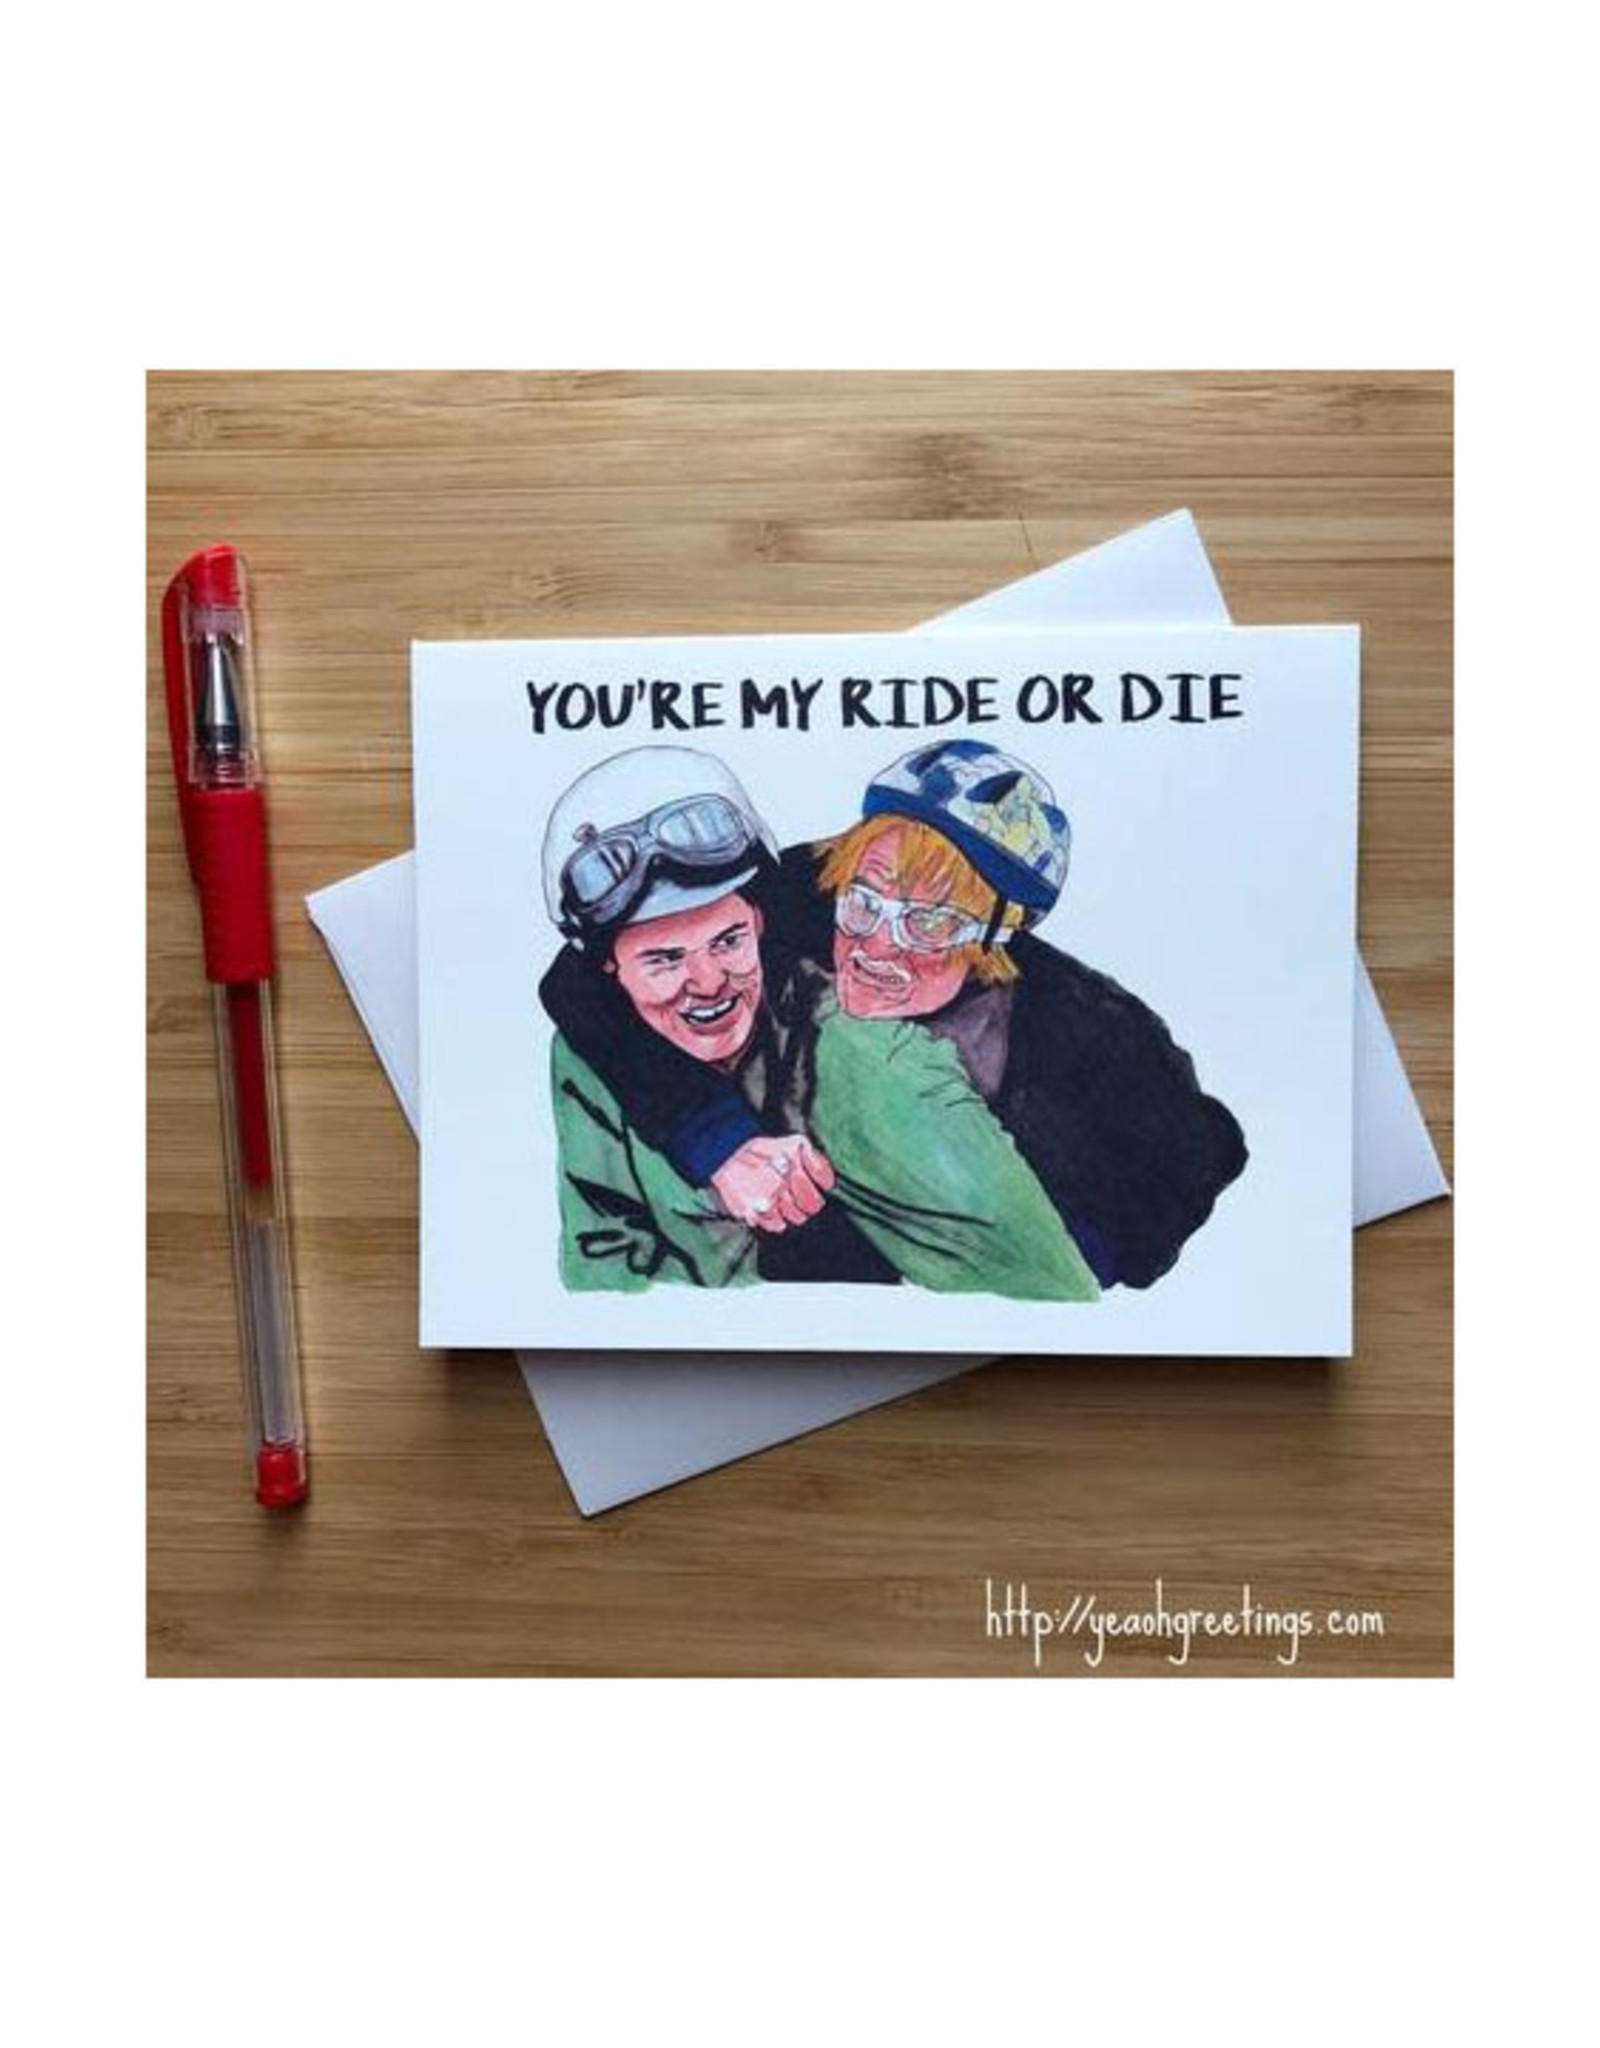 Dumb and Dumber You're My Ride or Die Greeting Card